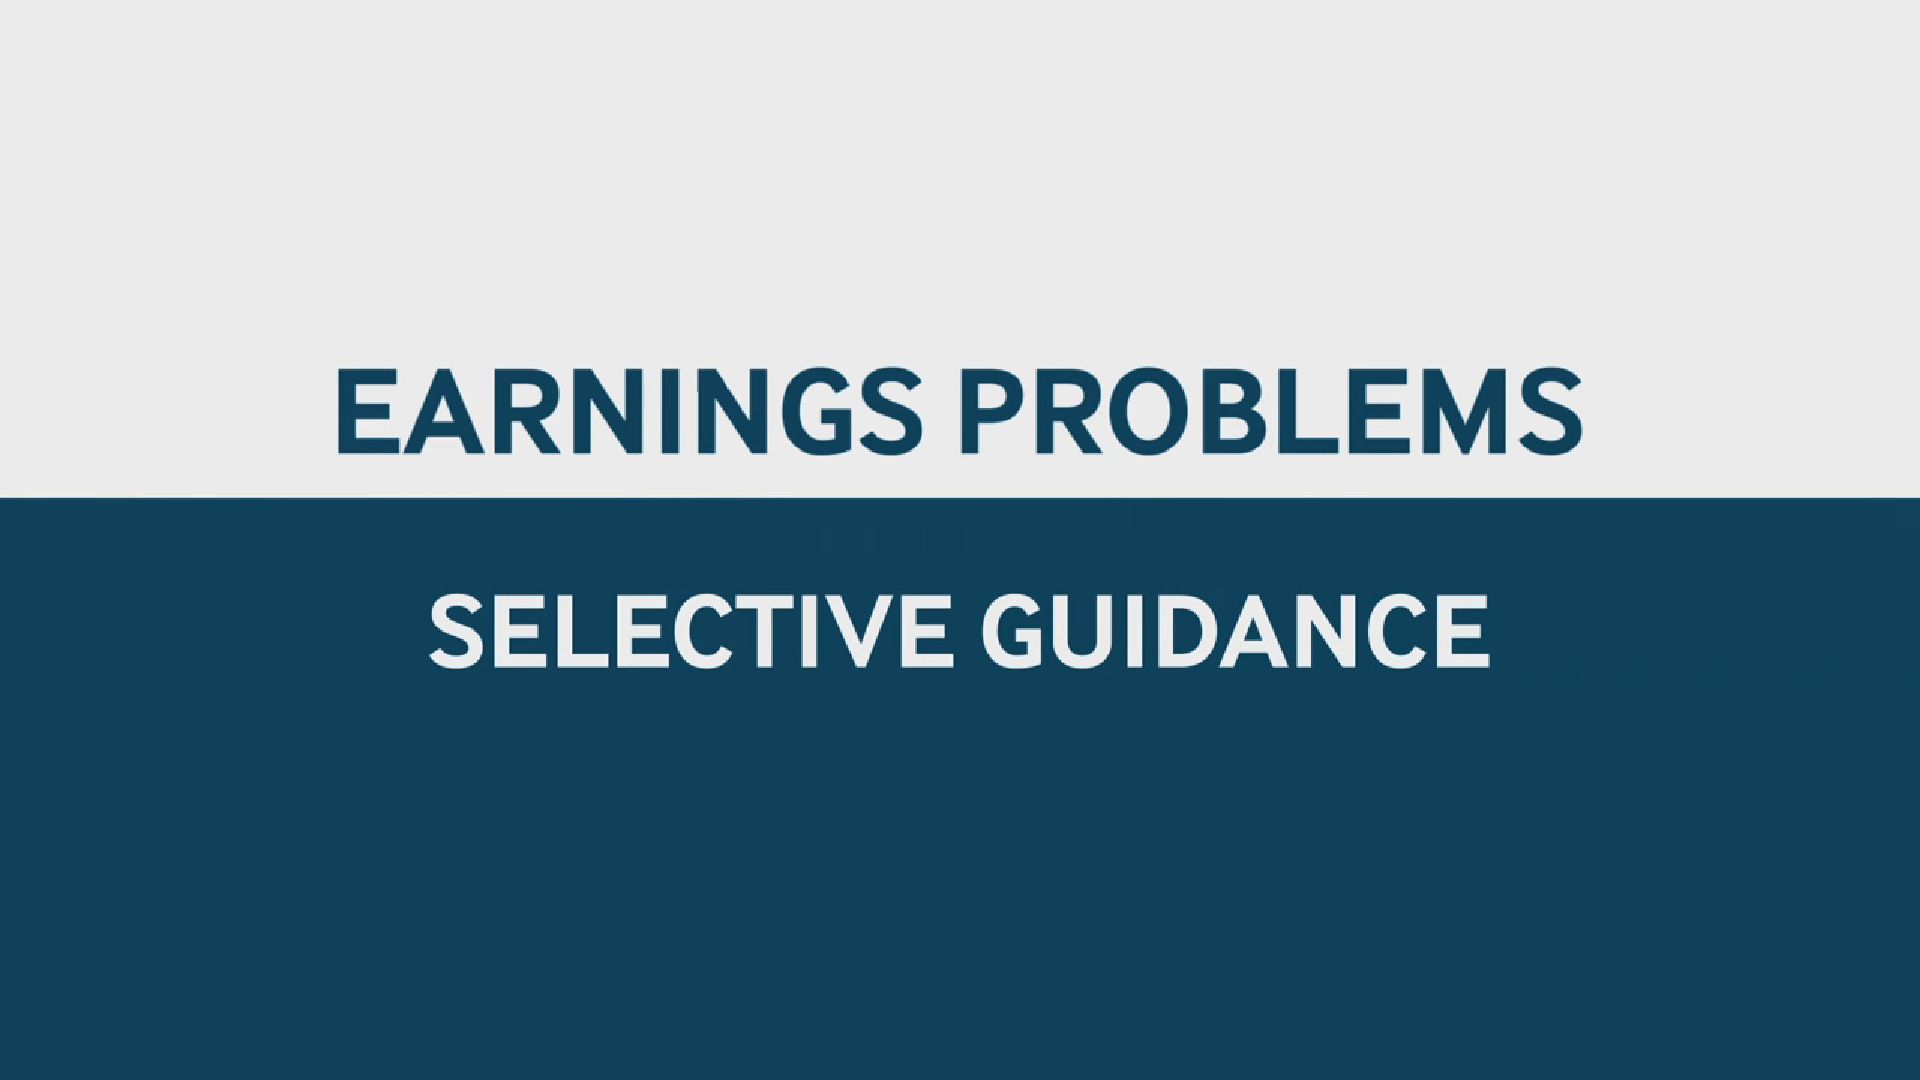 These earnings that cherry-pick what's accounted for are fallacious.